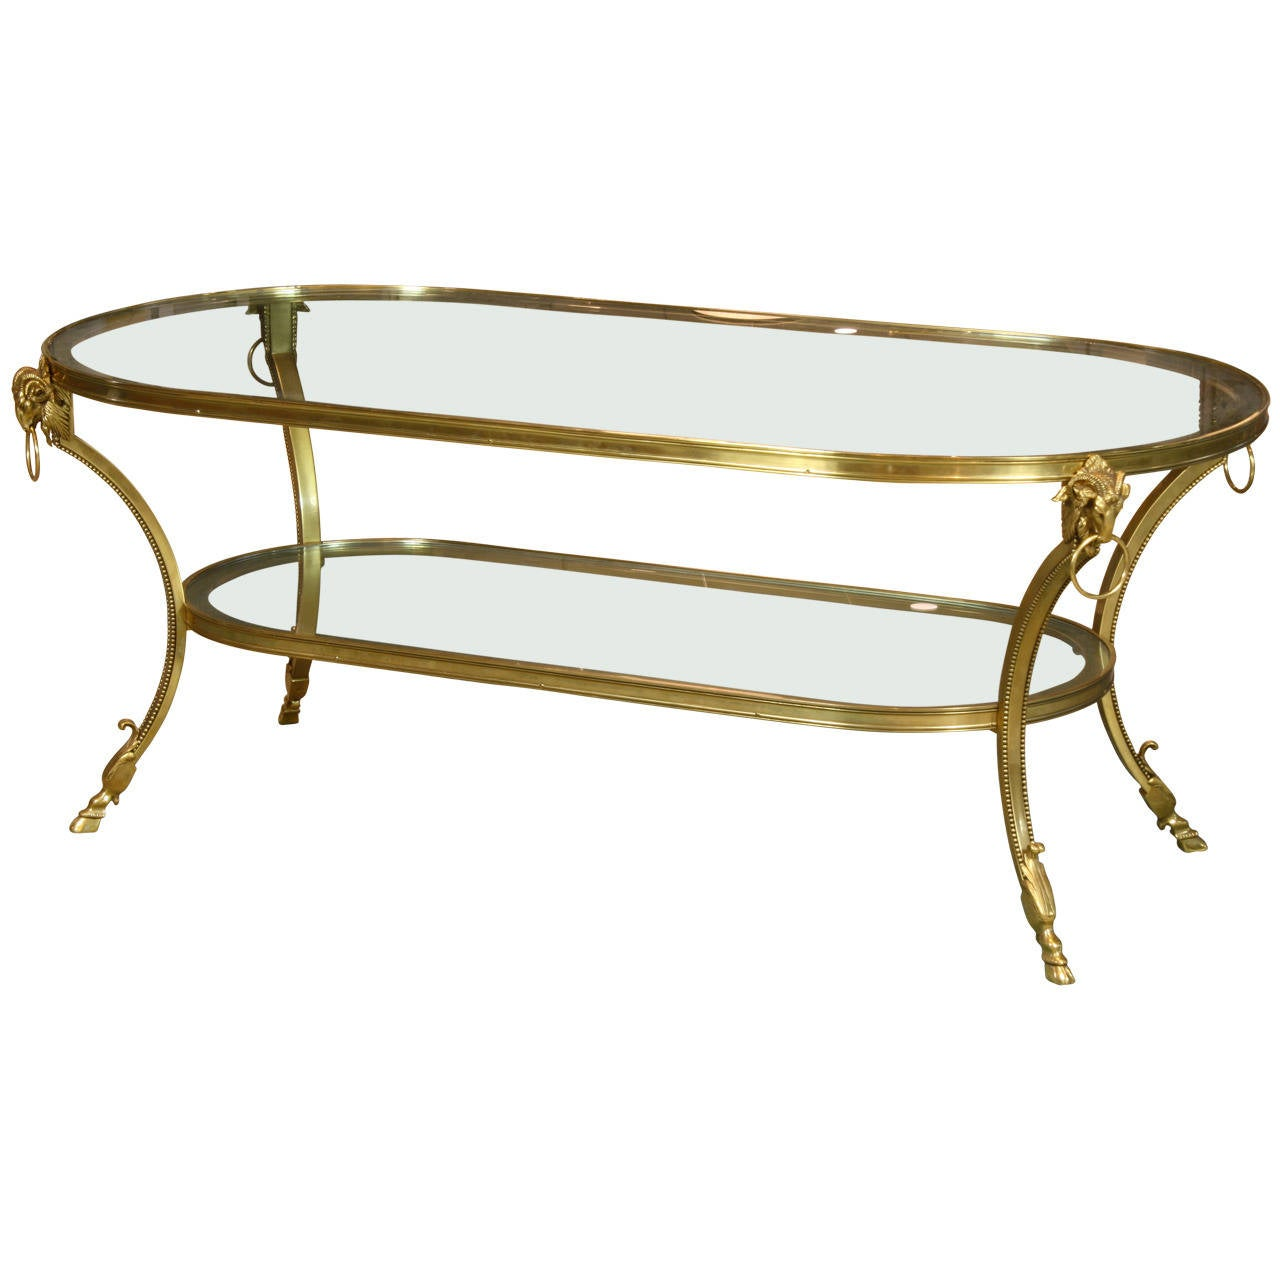 Jansen gilt bronze coffee table with rams 39 heads at 1stdibs Bronze coffee tables